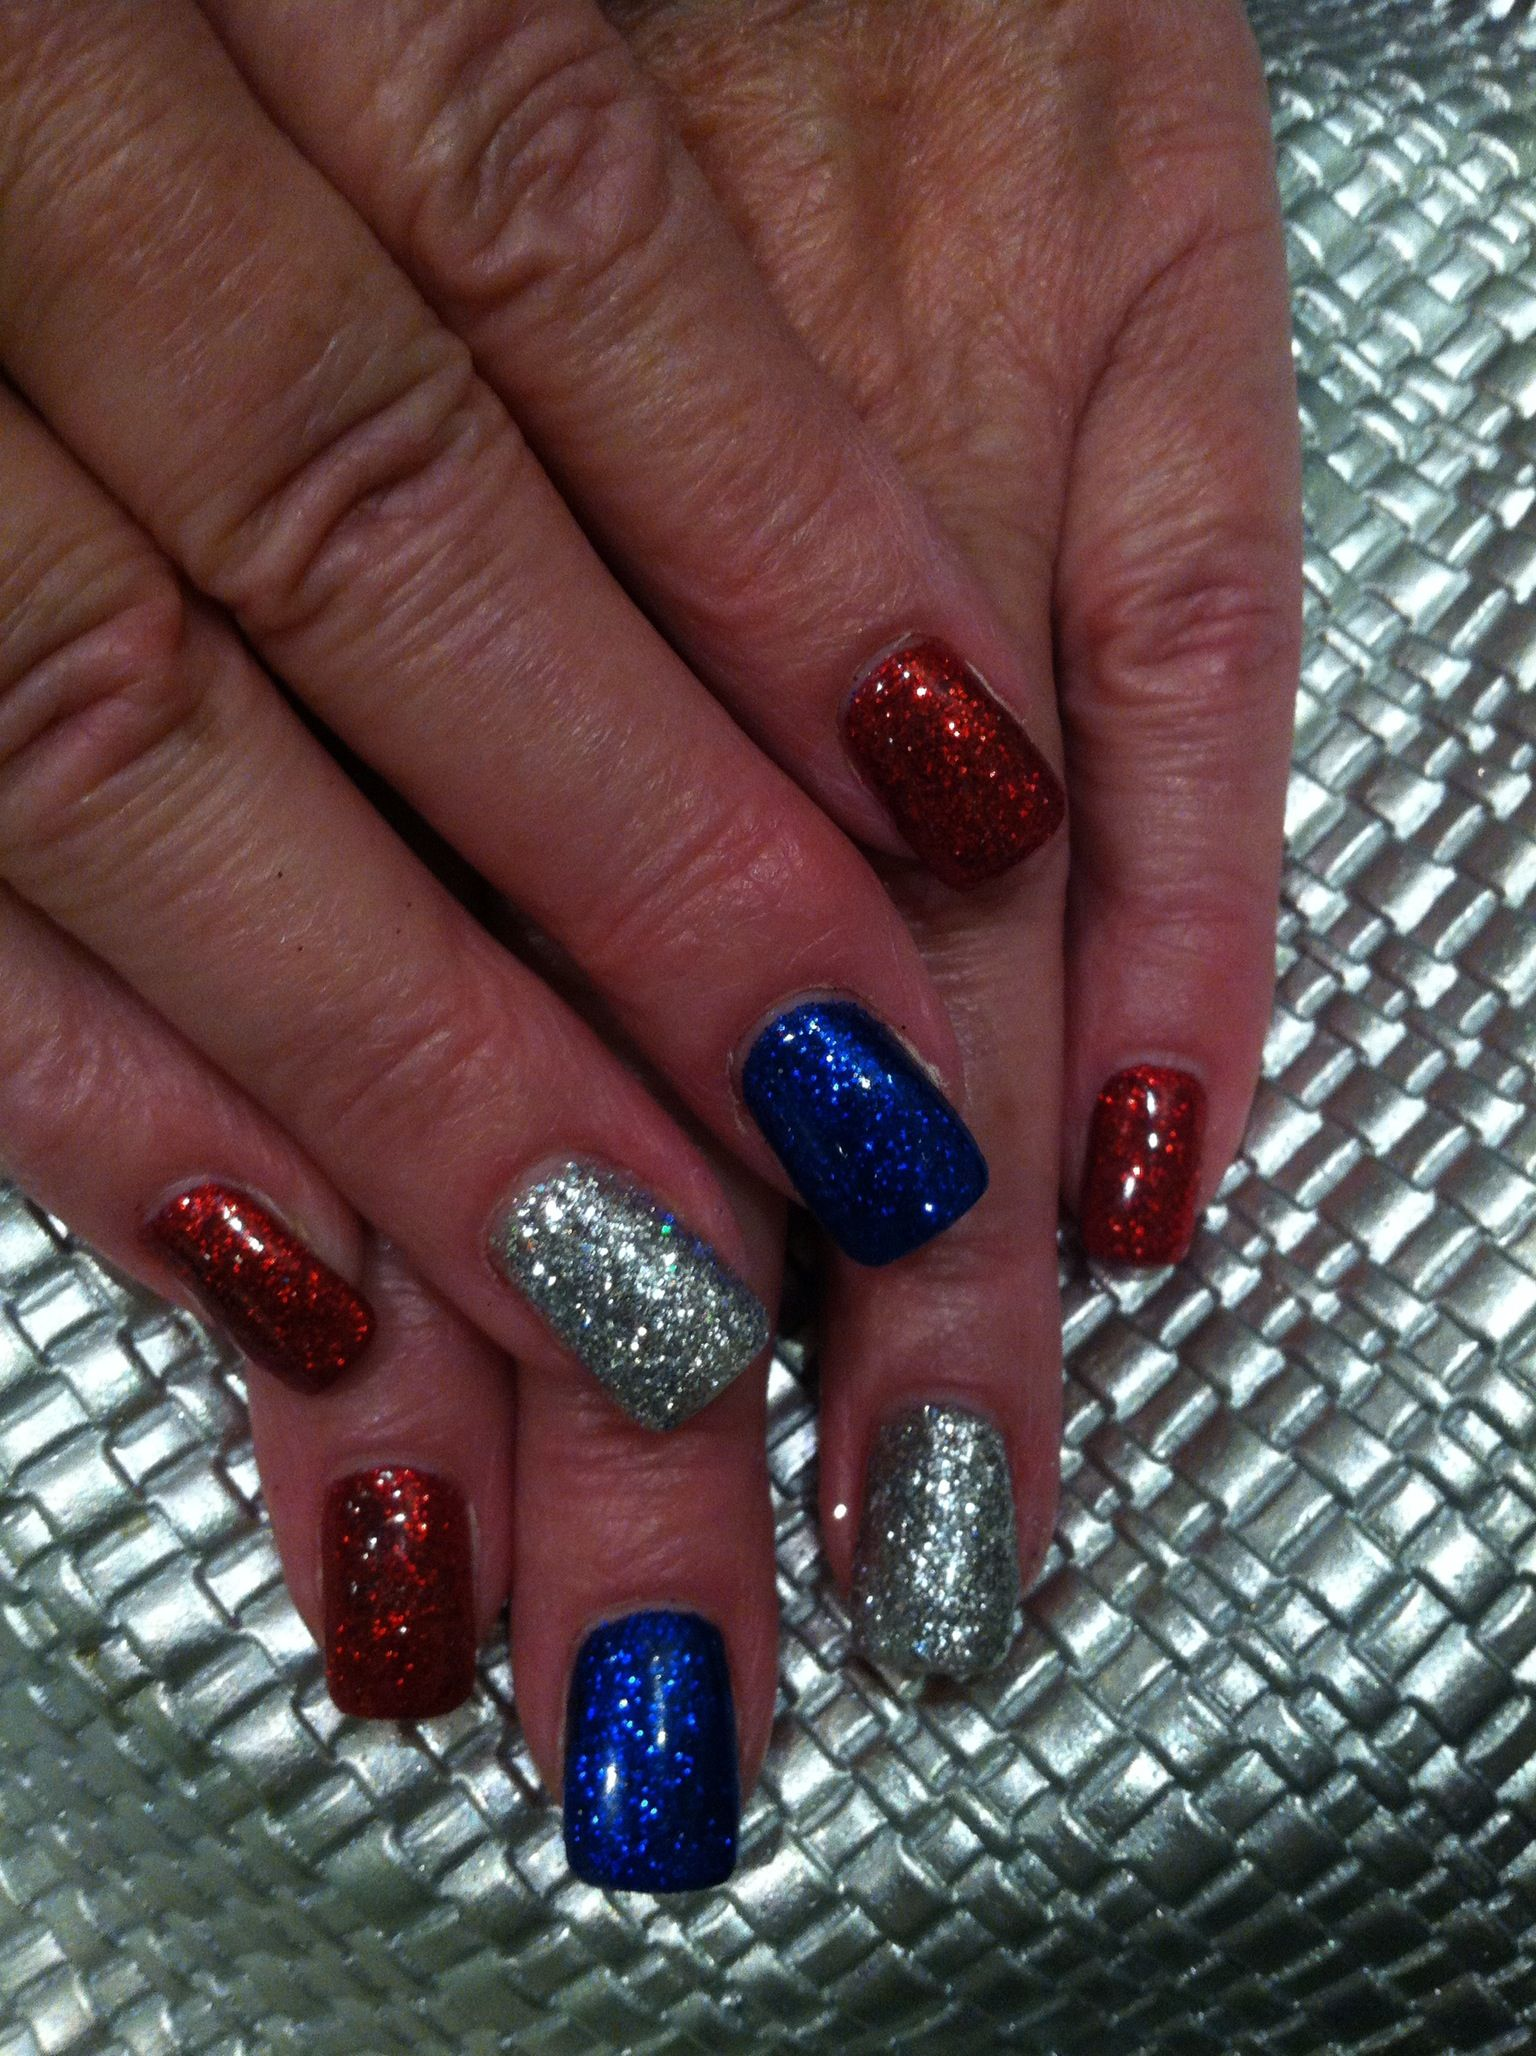 Pin By Leila Hoback Gosz On Hand Toe Jobs Red Nails Blue And Silver Nails Blue Nails